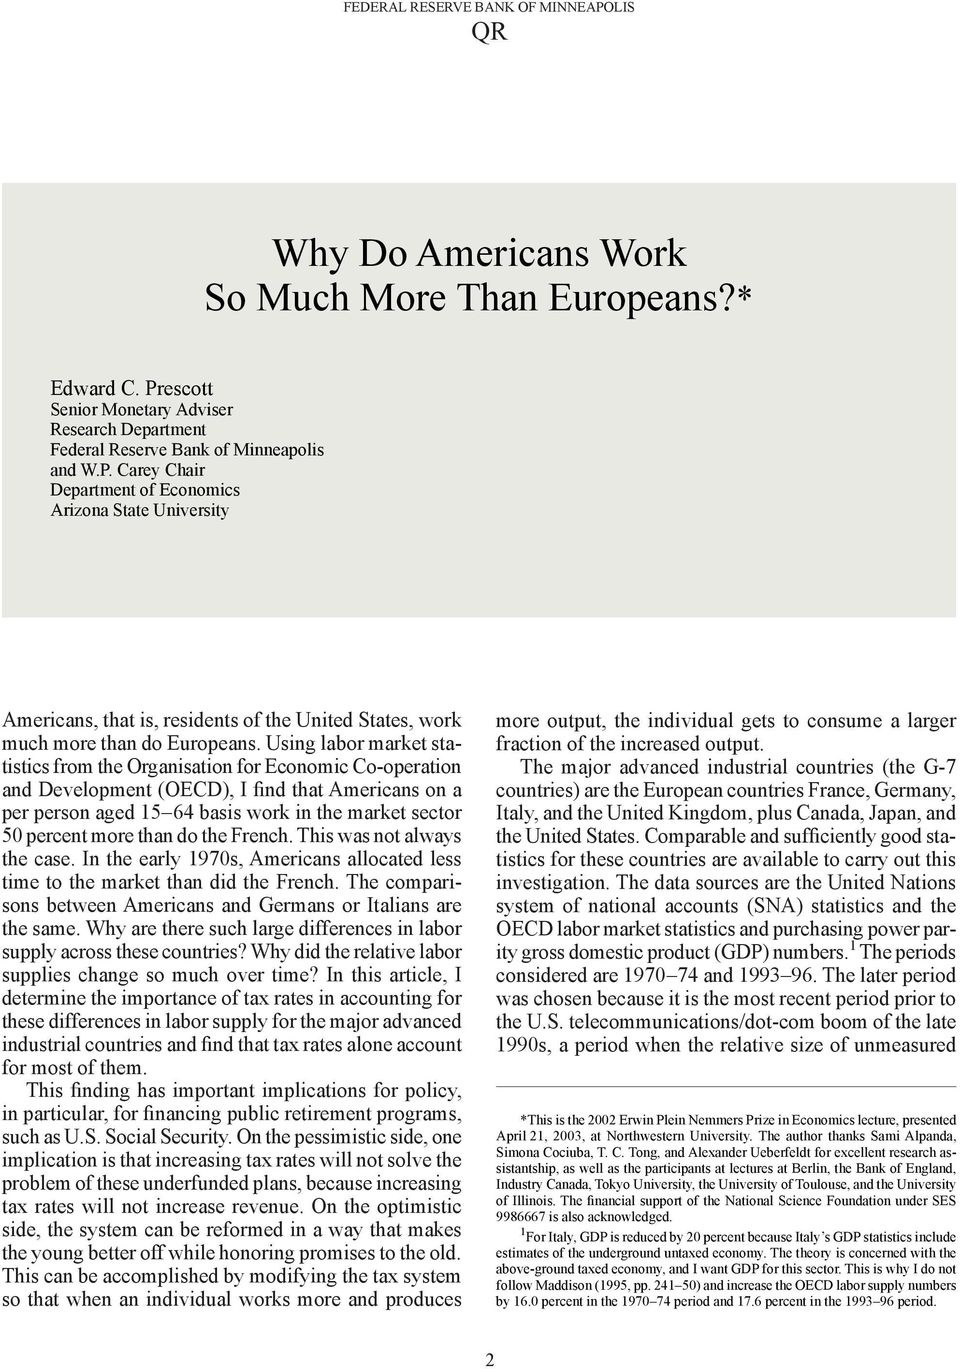 Using labor market statistics from the Organisation for Economic Co-operation and Development (OECD), I find that Americans on a per person aged 15 64 basis work in the market sector 50 percent more